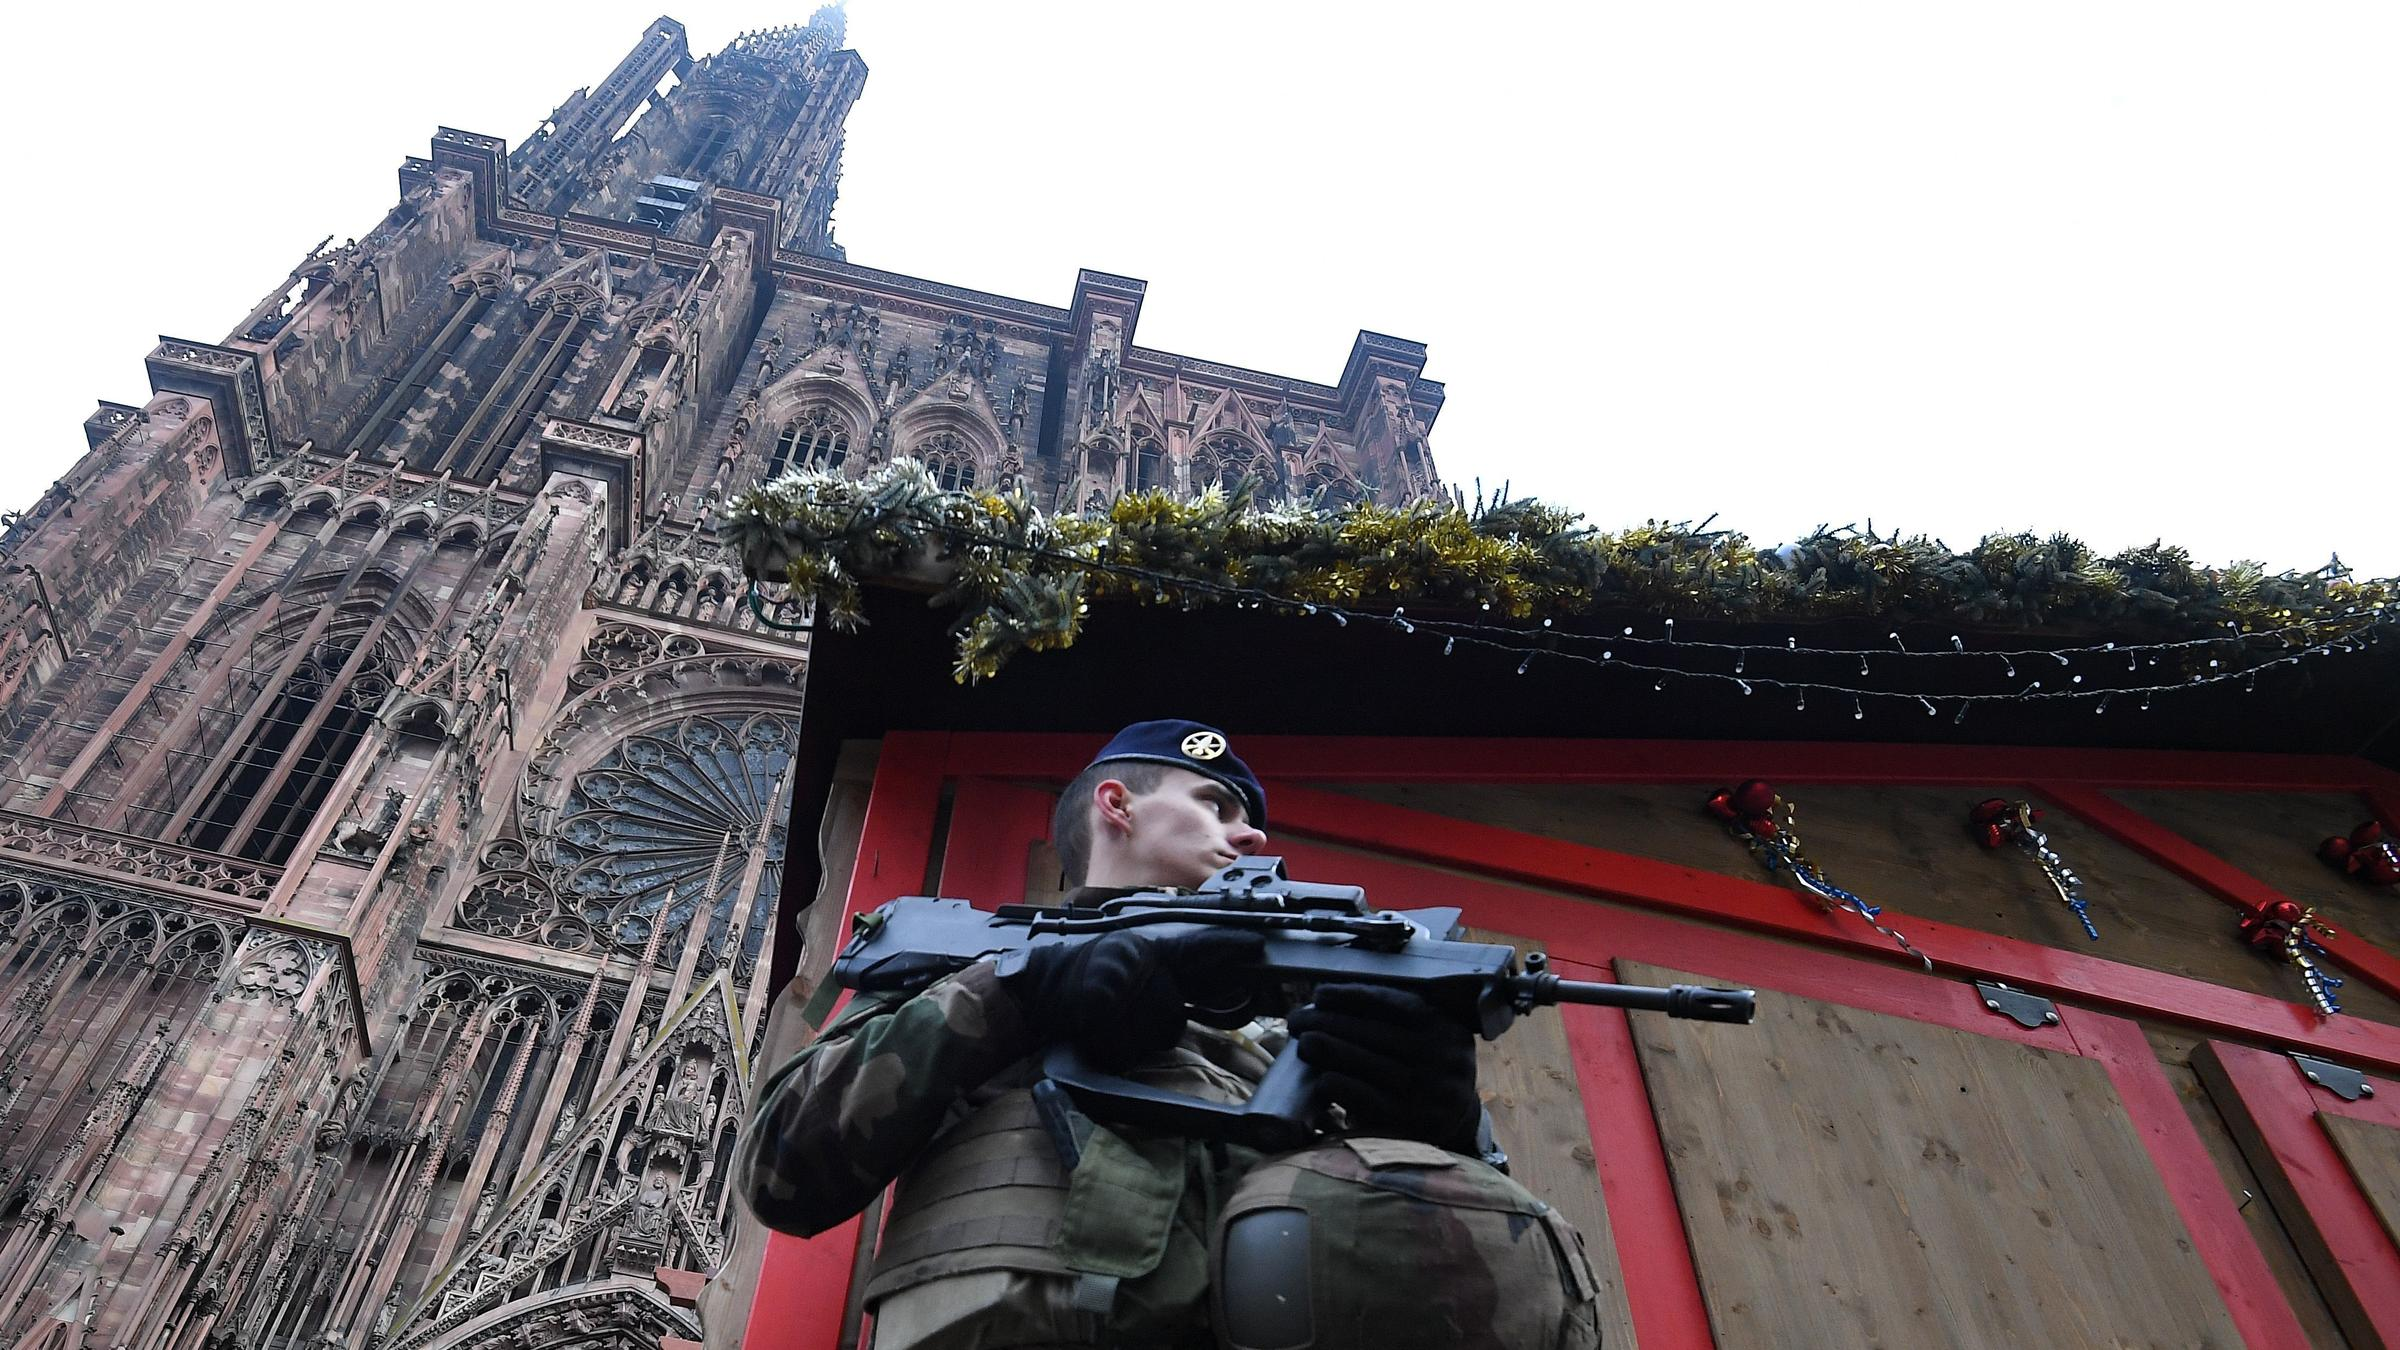 French police hunts Strasbourg shooter after 4 killed near Christmas market